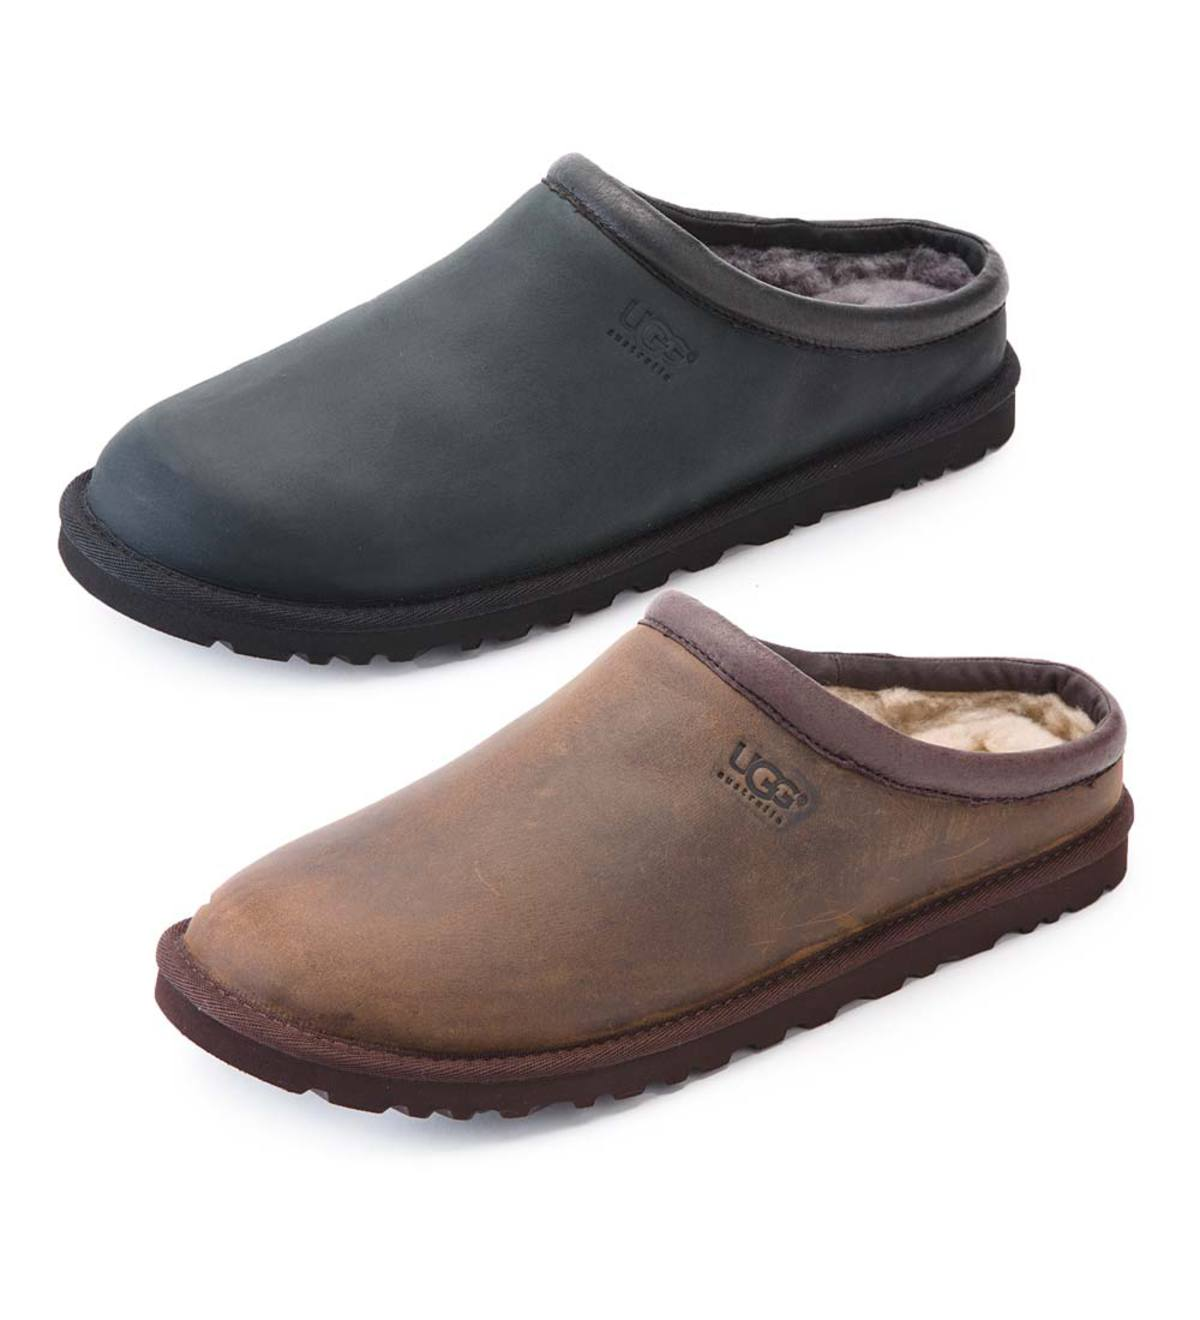 edf8461fdc8 UGG Men's Classic Leather Slide-On Clogs | PlowHearth